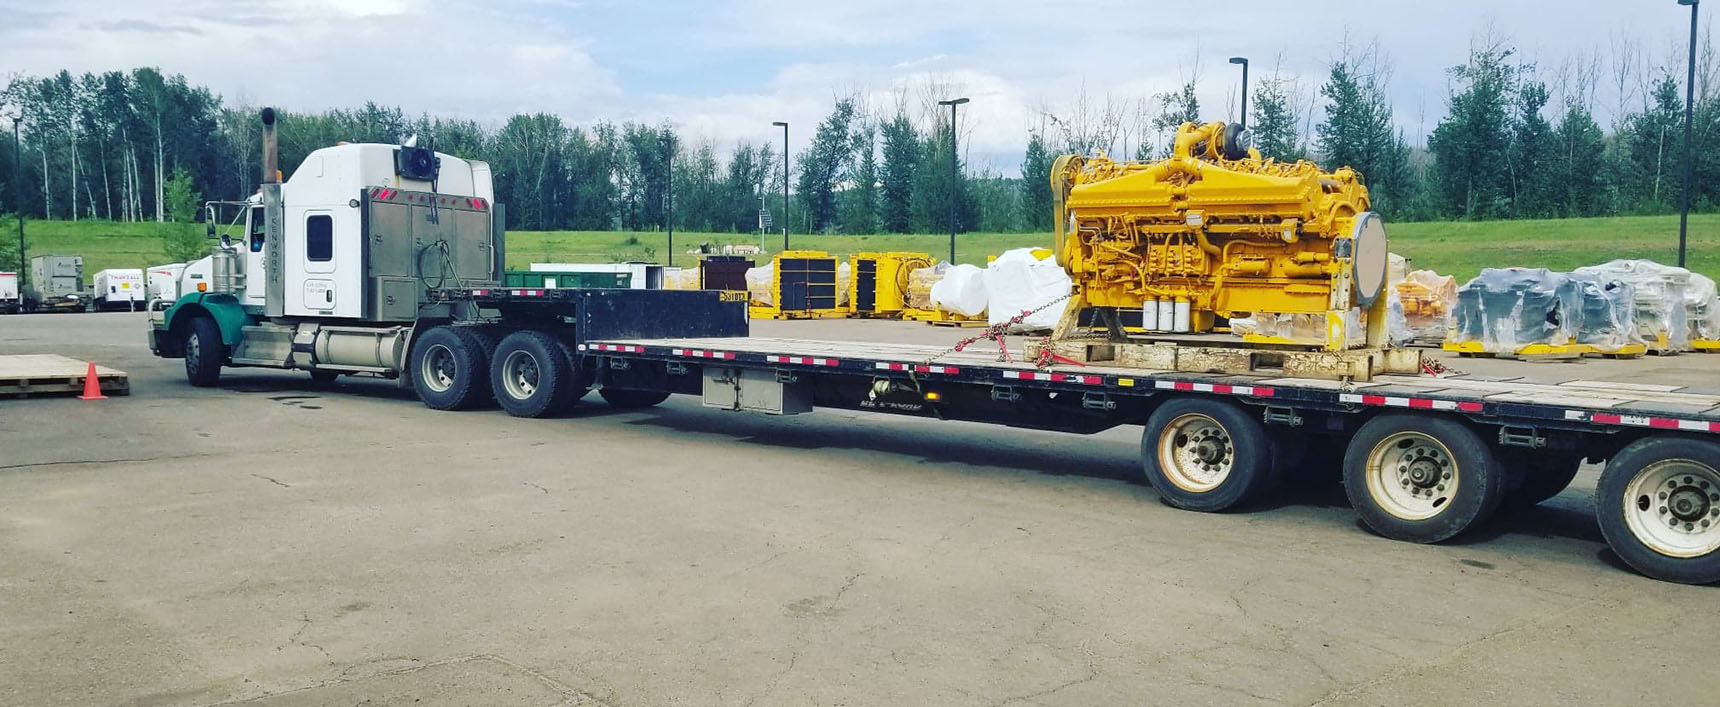 Transport Equipment Fort Mac - 4 Seasons Transport & Towing